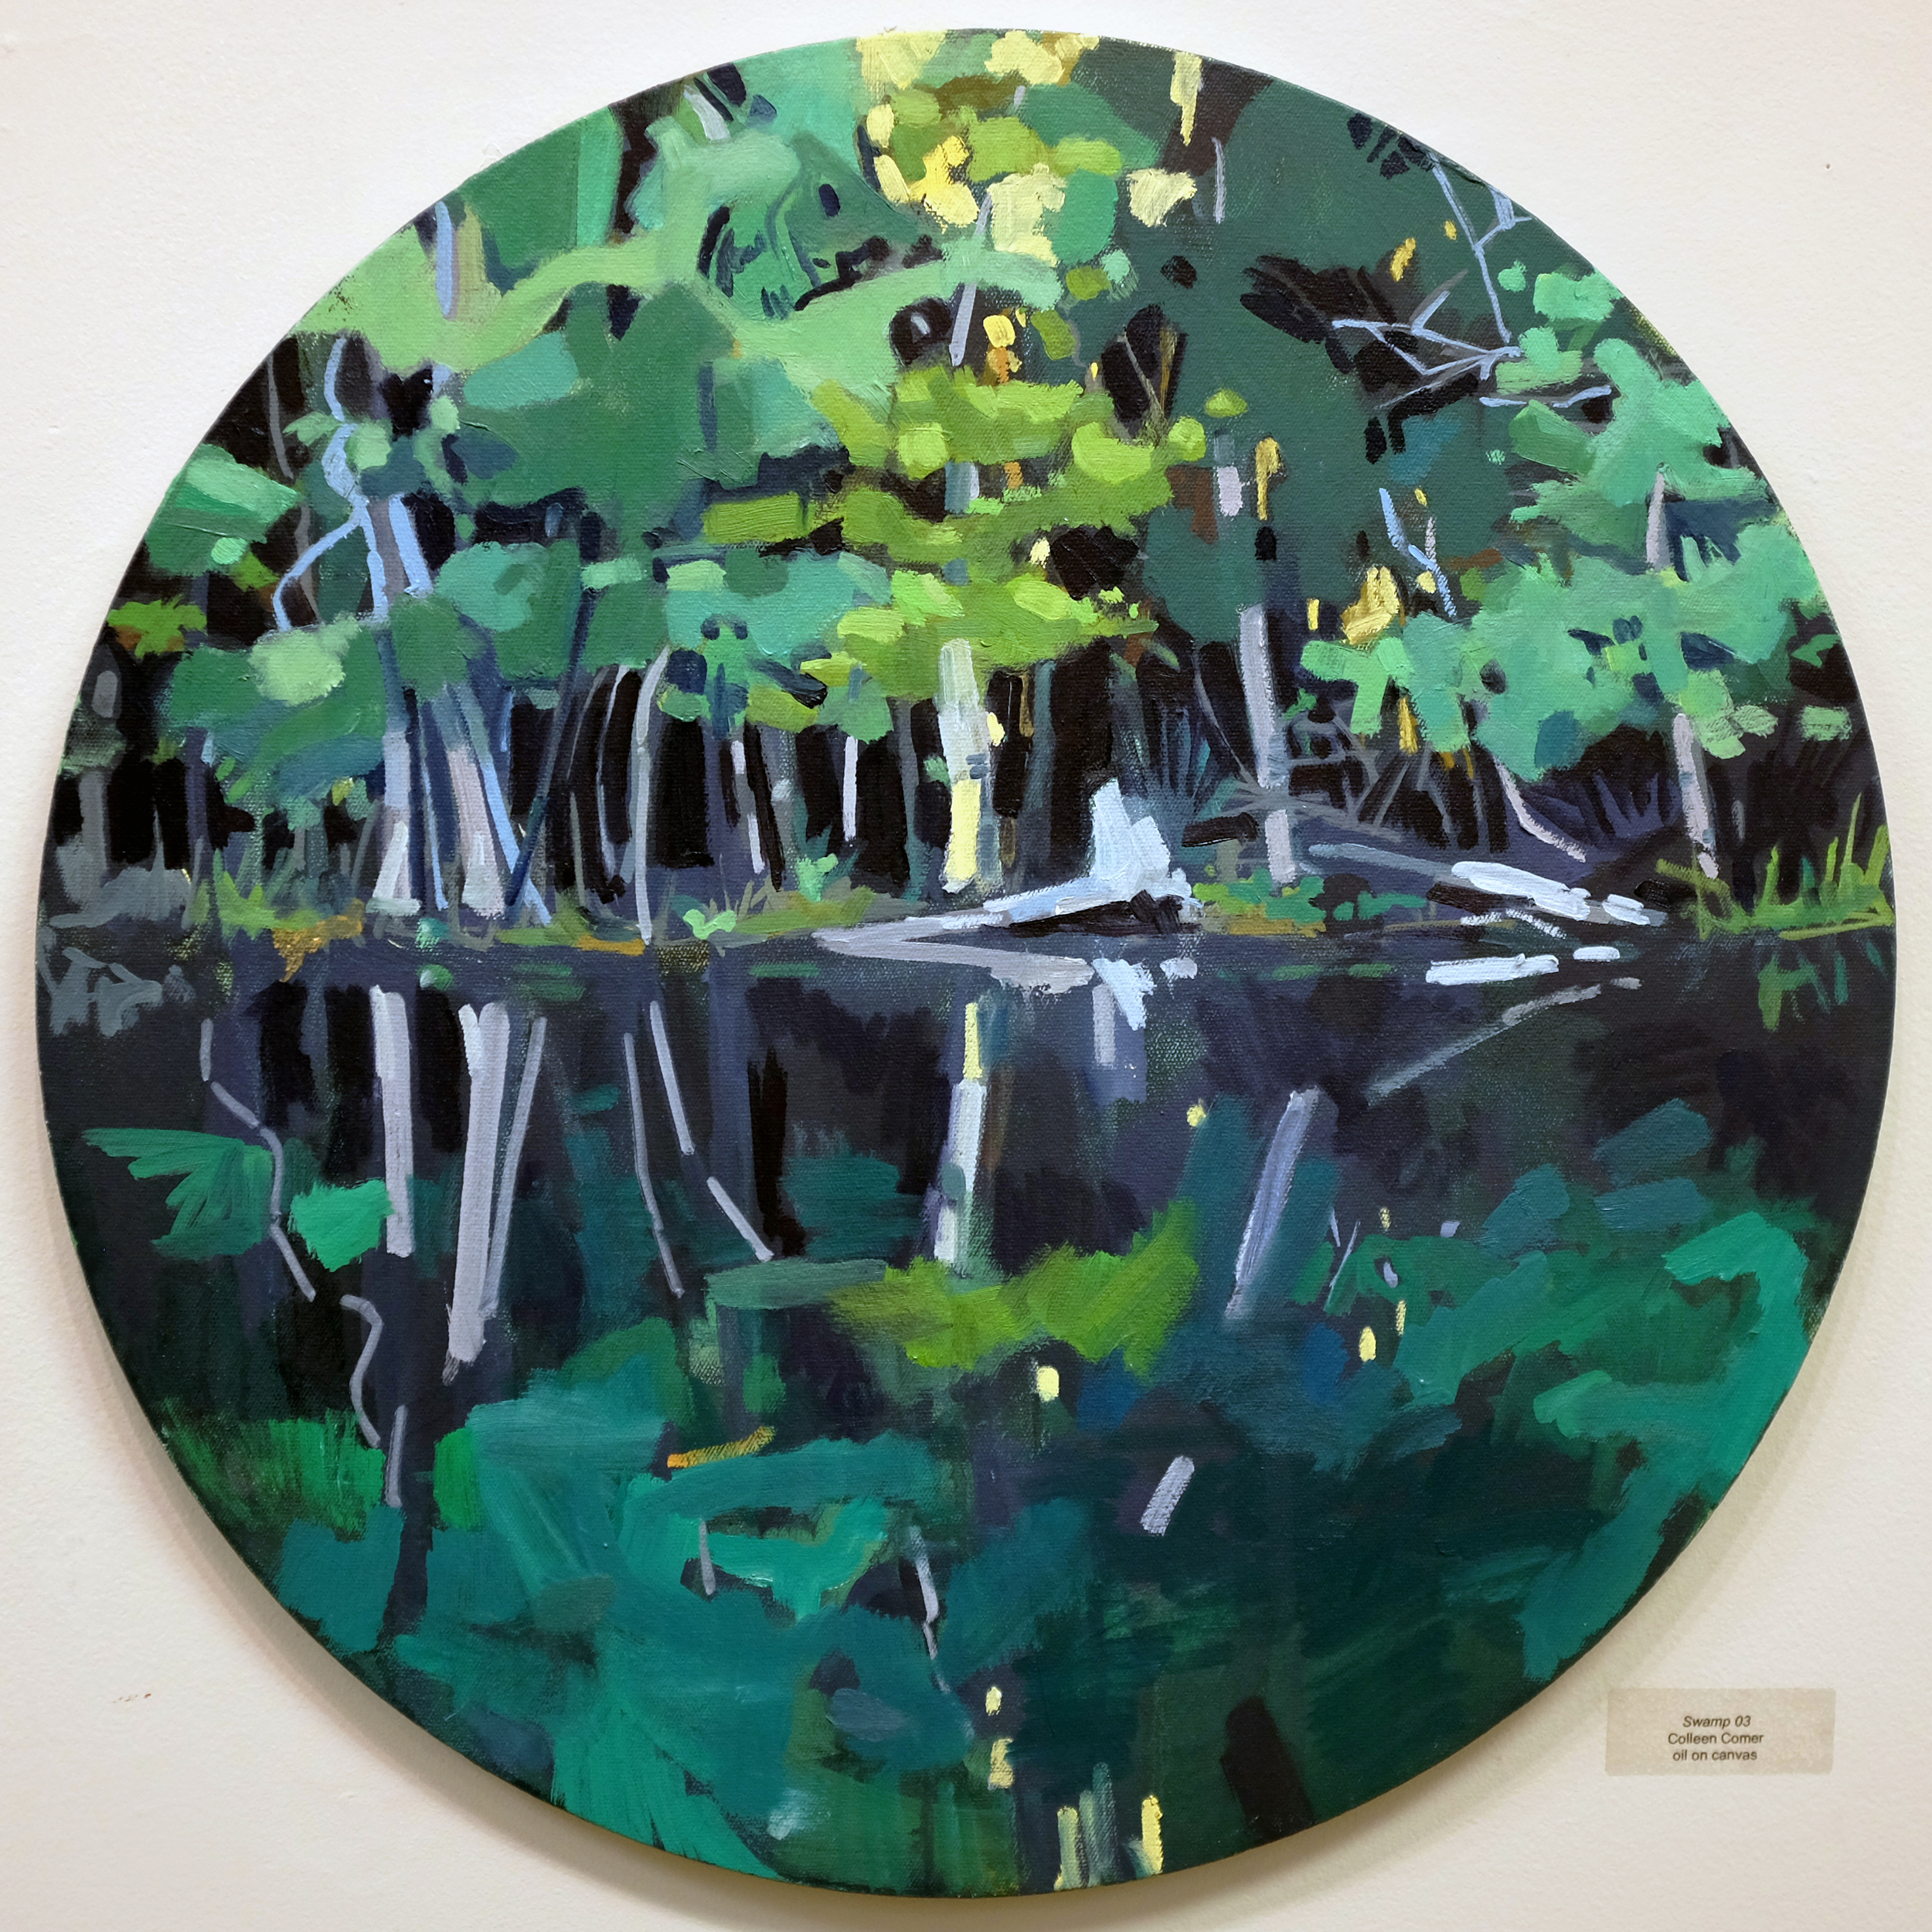 Swamp 03 (SOLD)